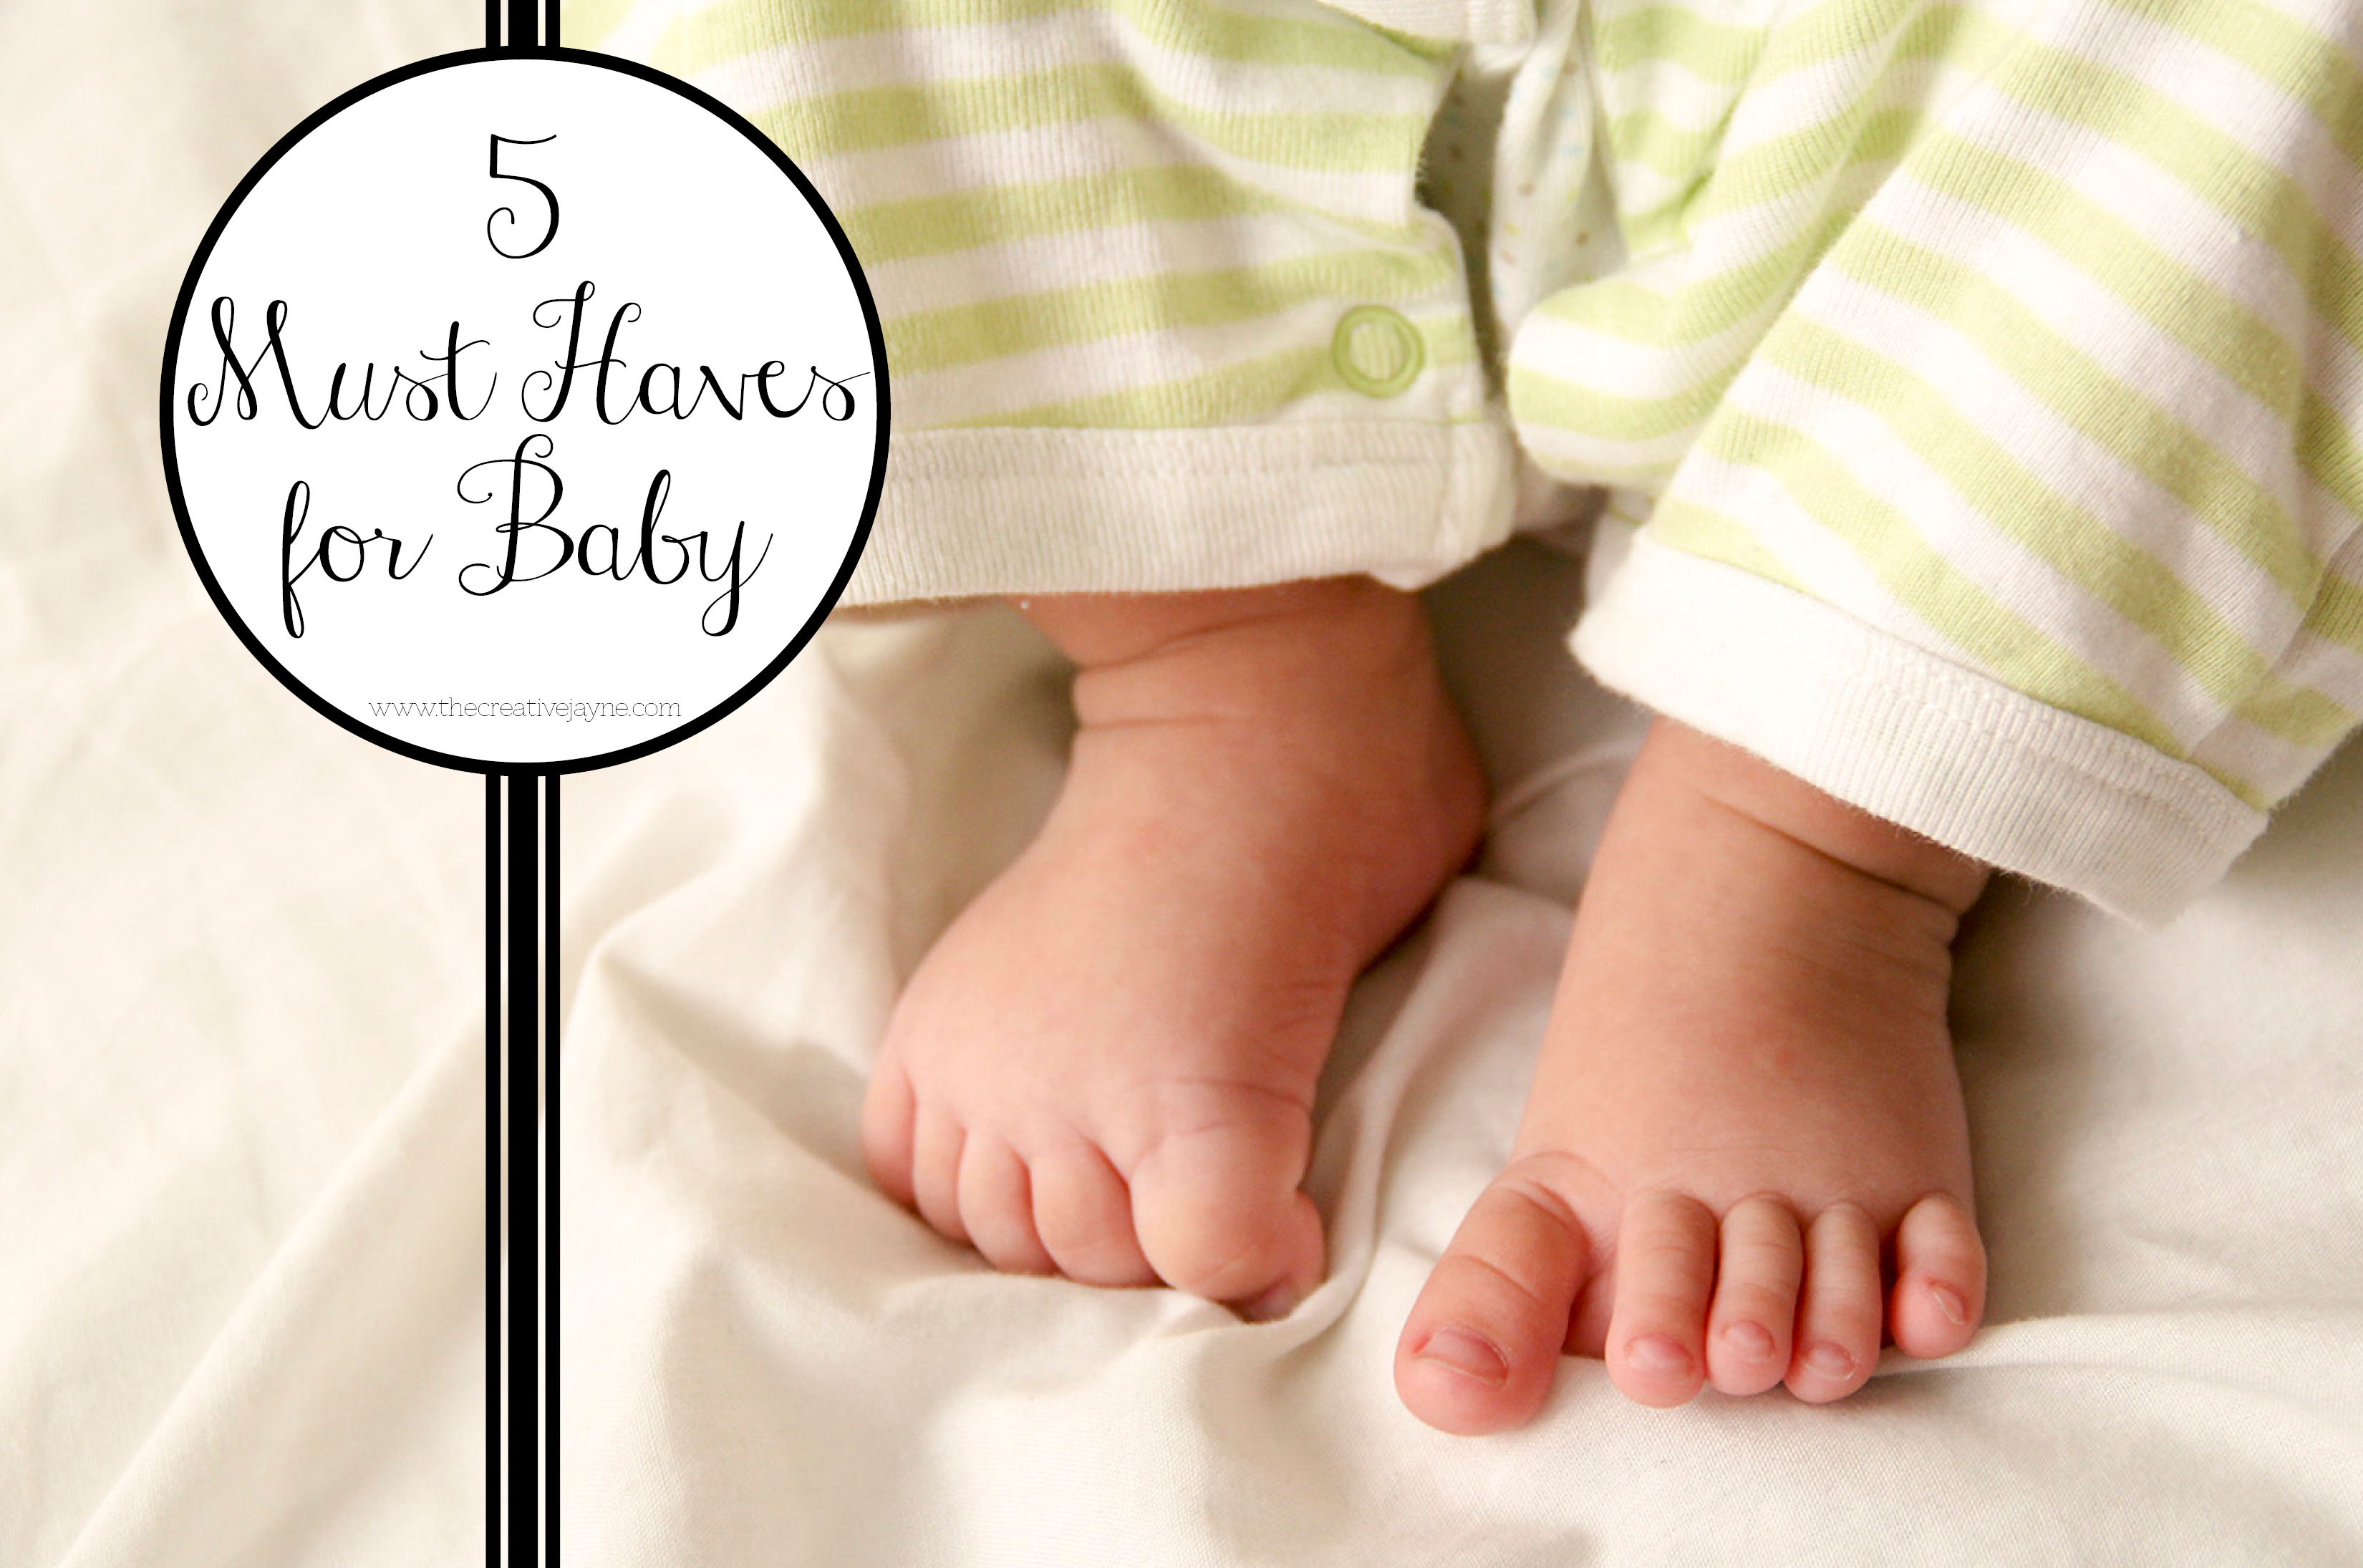 the Creative Jayne 5 on friday baby must haves